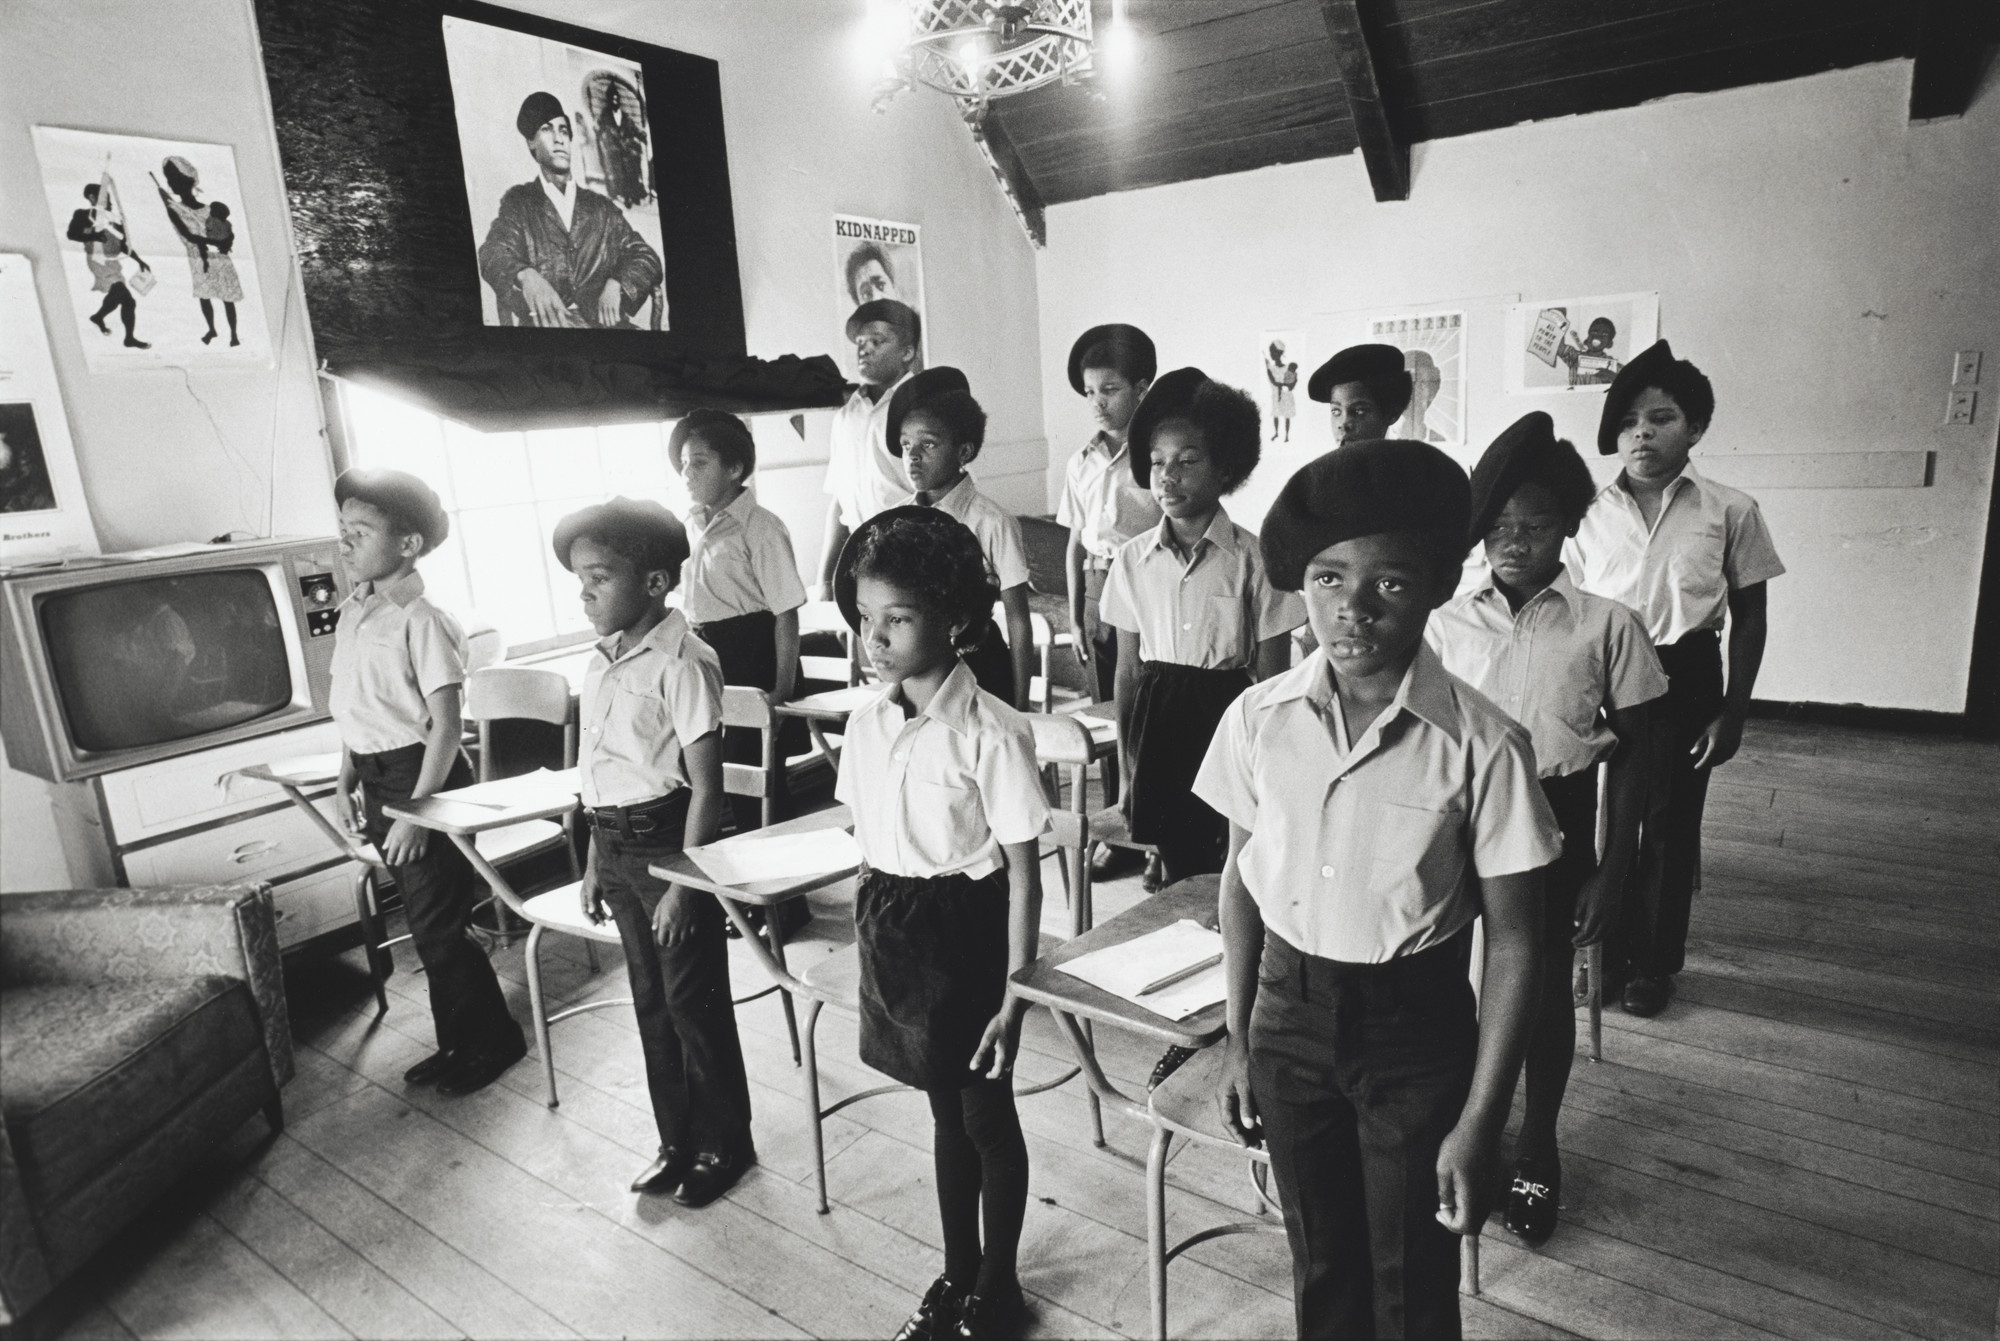 Stephen Shames. Black Panther children in a classroom at the Intercommunal Youth Institute, the Black Panther school, Oakland, California. 1971